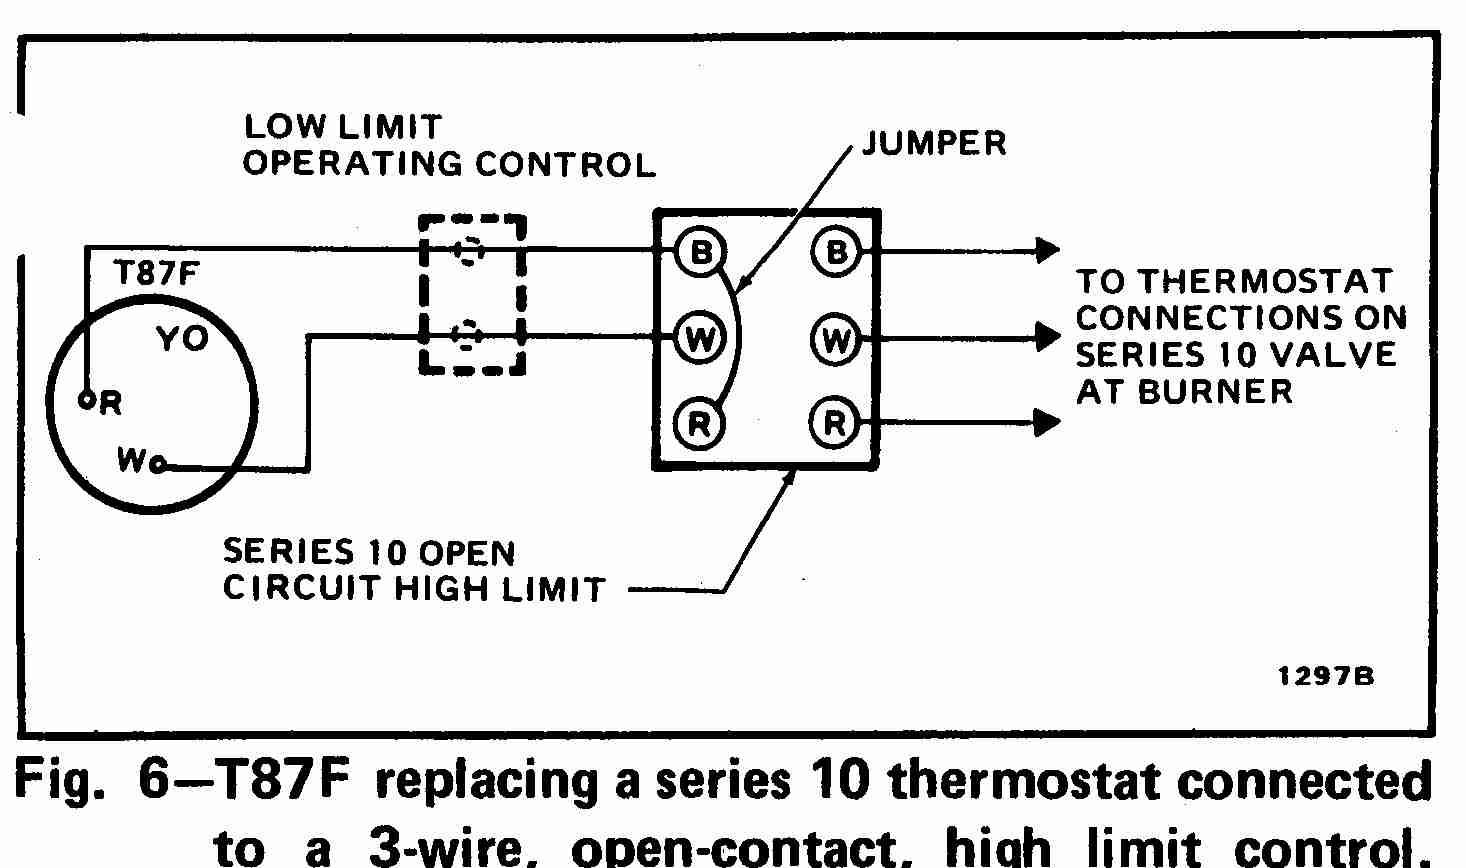 TT_T87F_0002_3WHL_DJF room thermostat wiring diagrams for hvac systems thermostat wiring diagram at webbmarketing.co